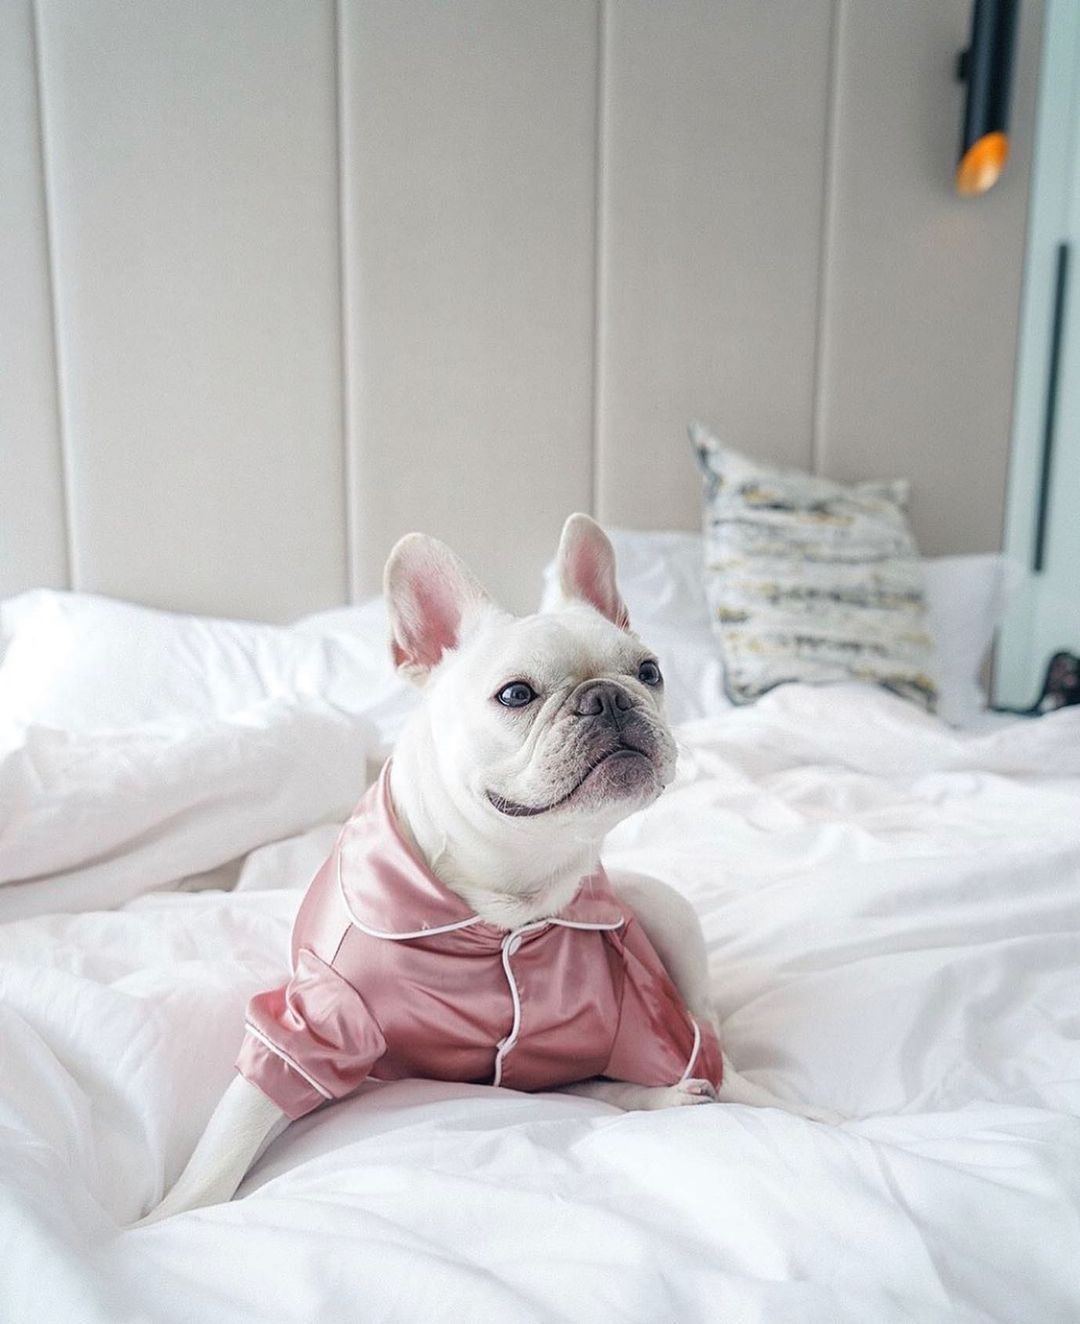 7 Luxury Pet-Friendly Hotels For Your Next Hong Kong Staycation